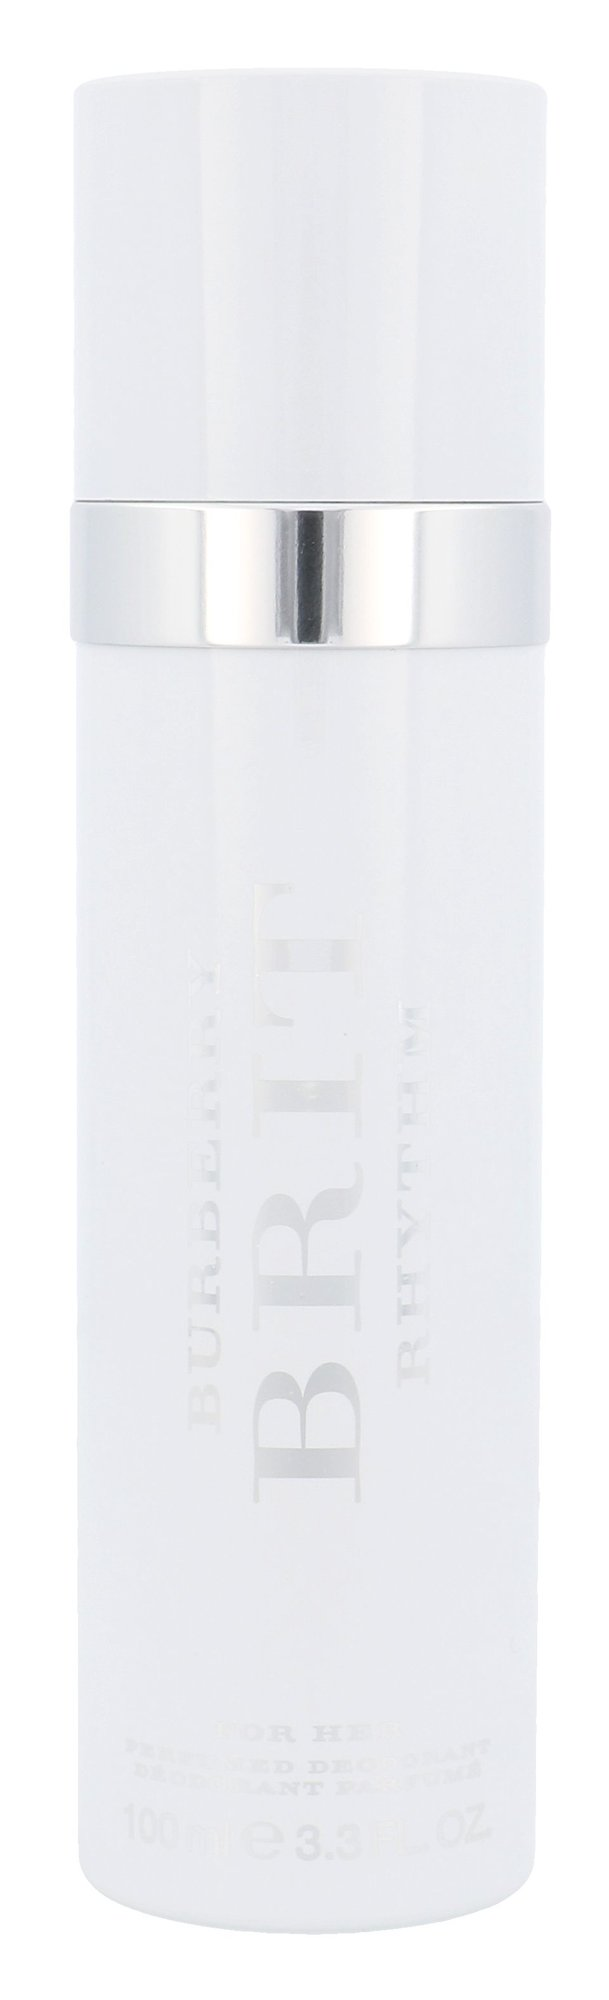 Burberry Brit for Her Deodorant 100ml